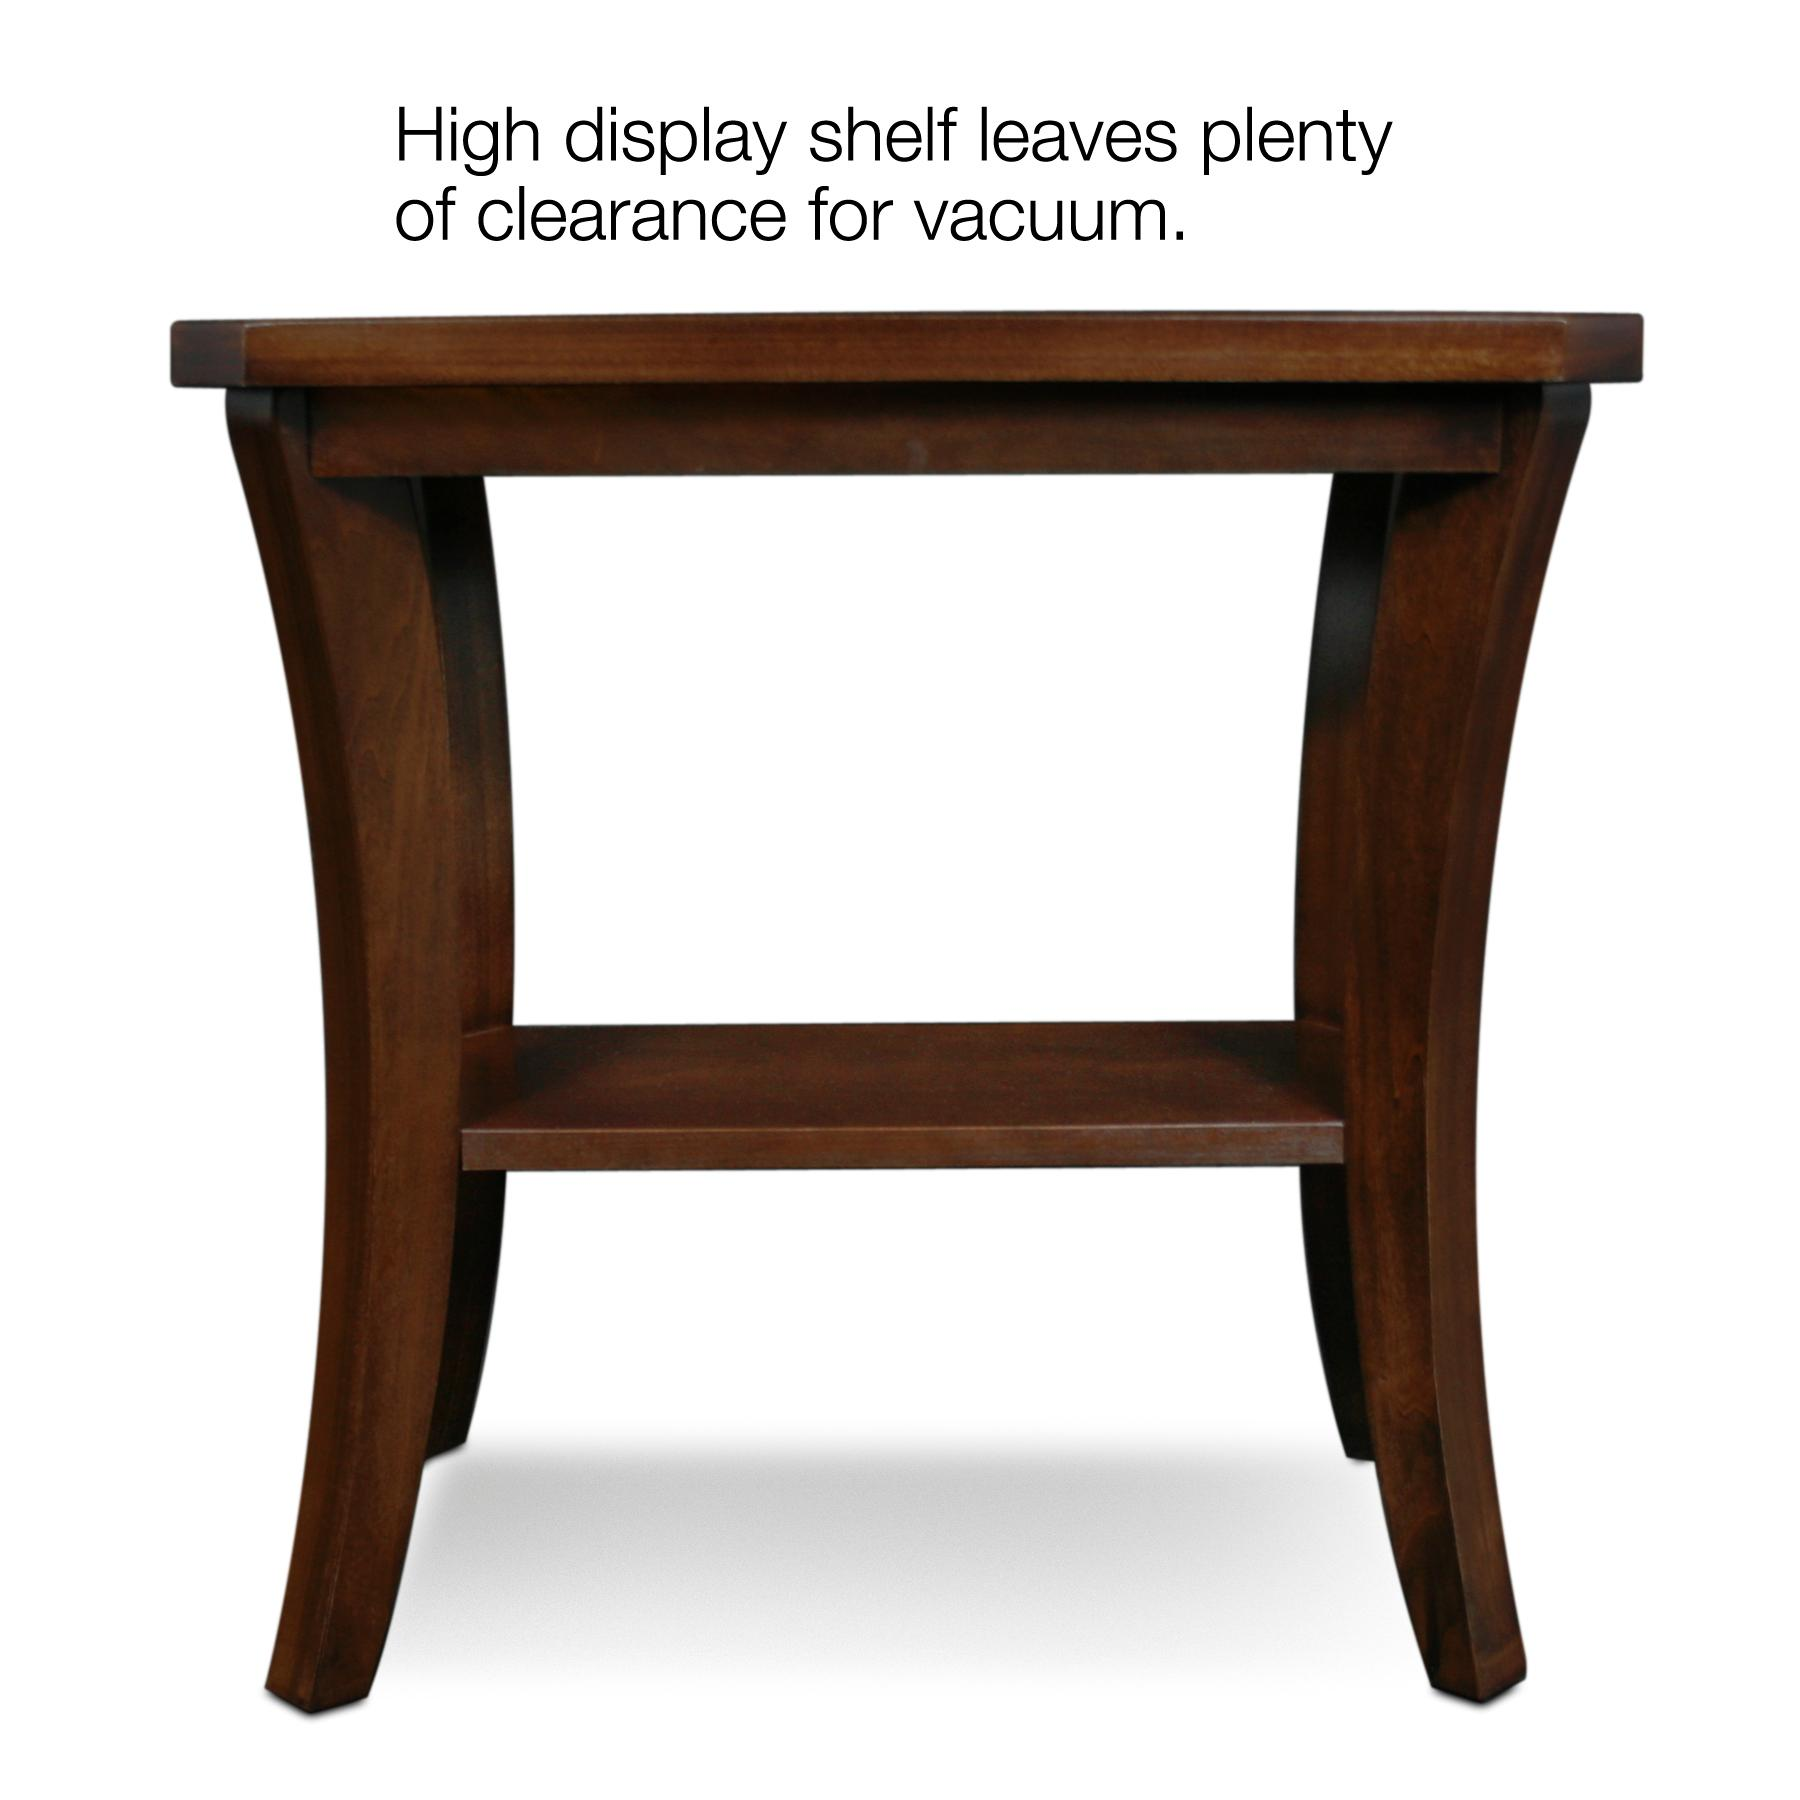 End table side table chairside table living room furniture - Narrow side tables for living room ...